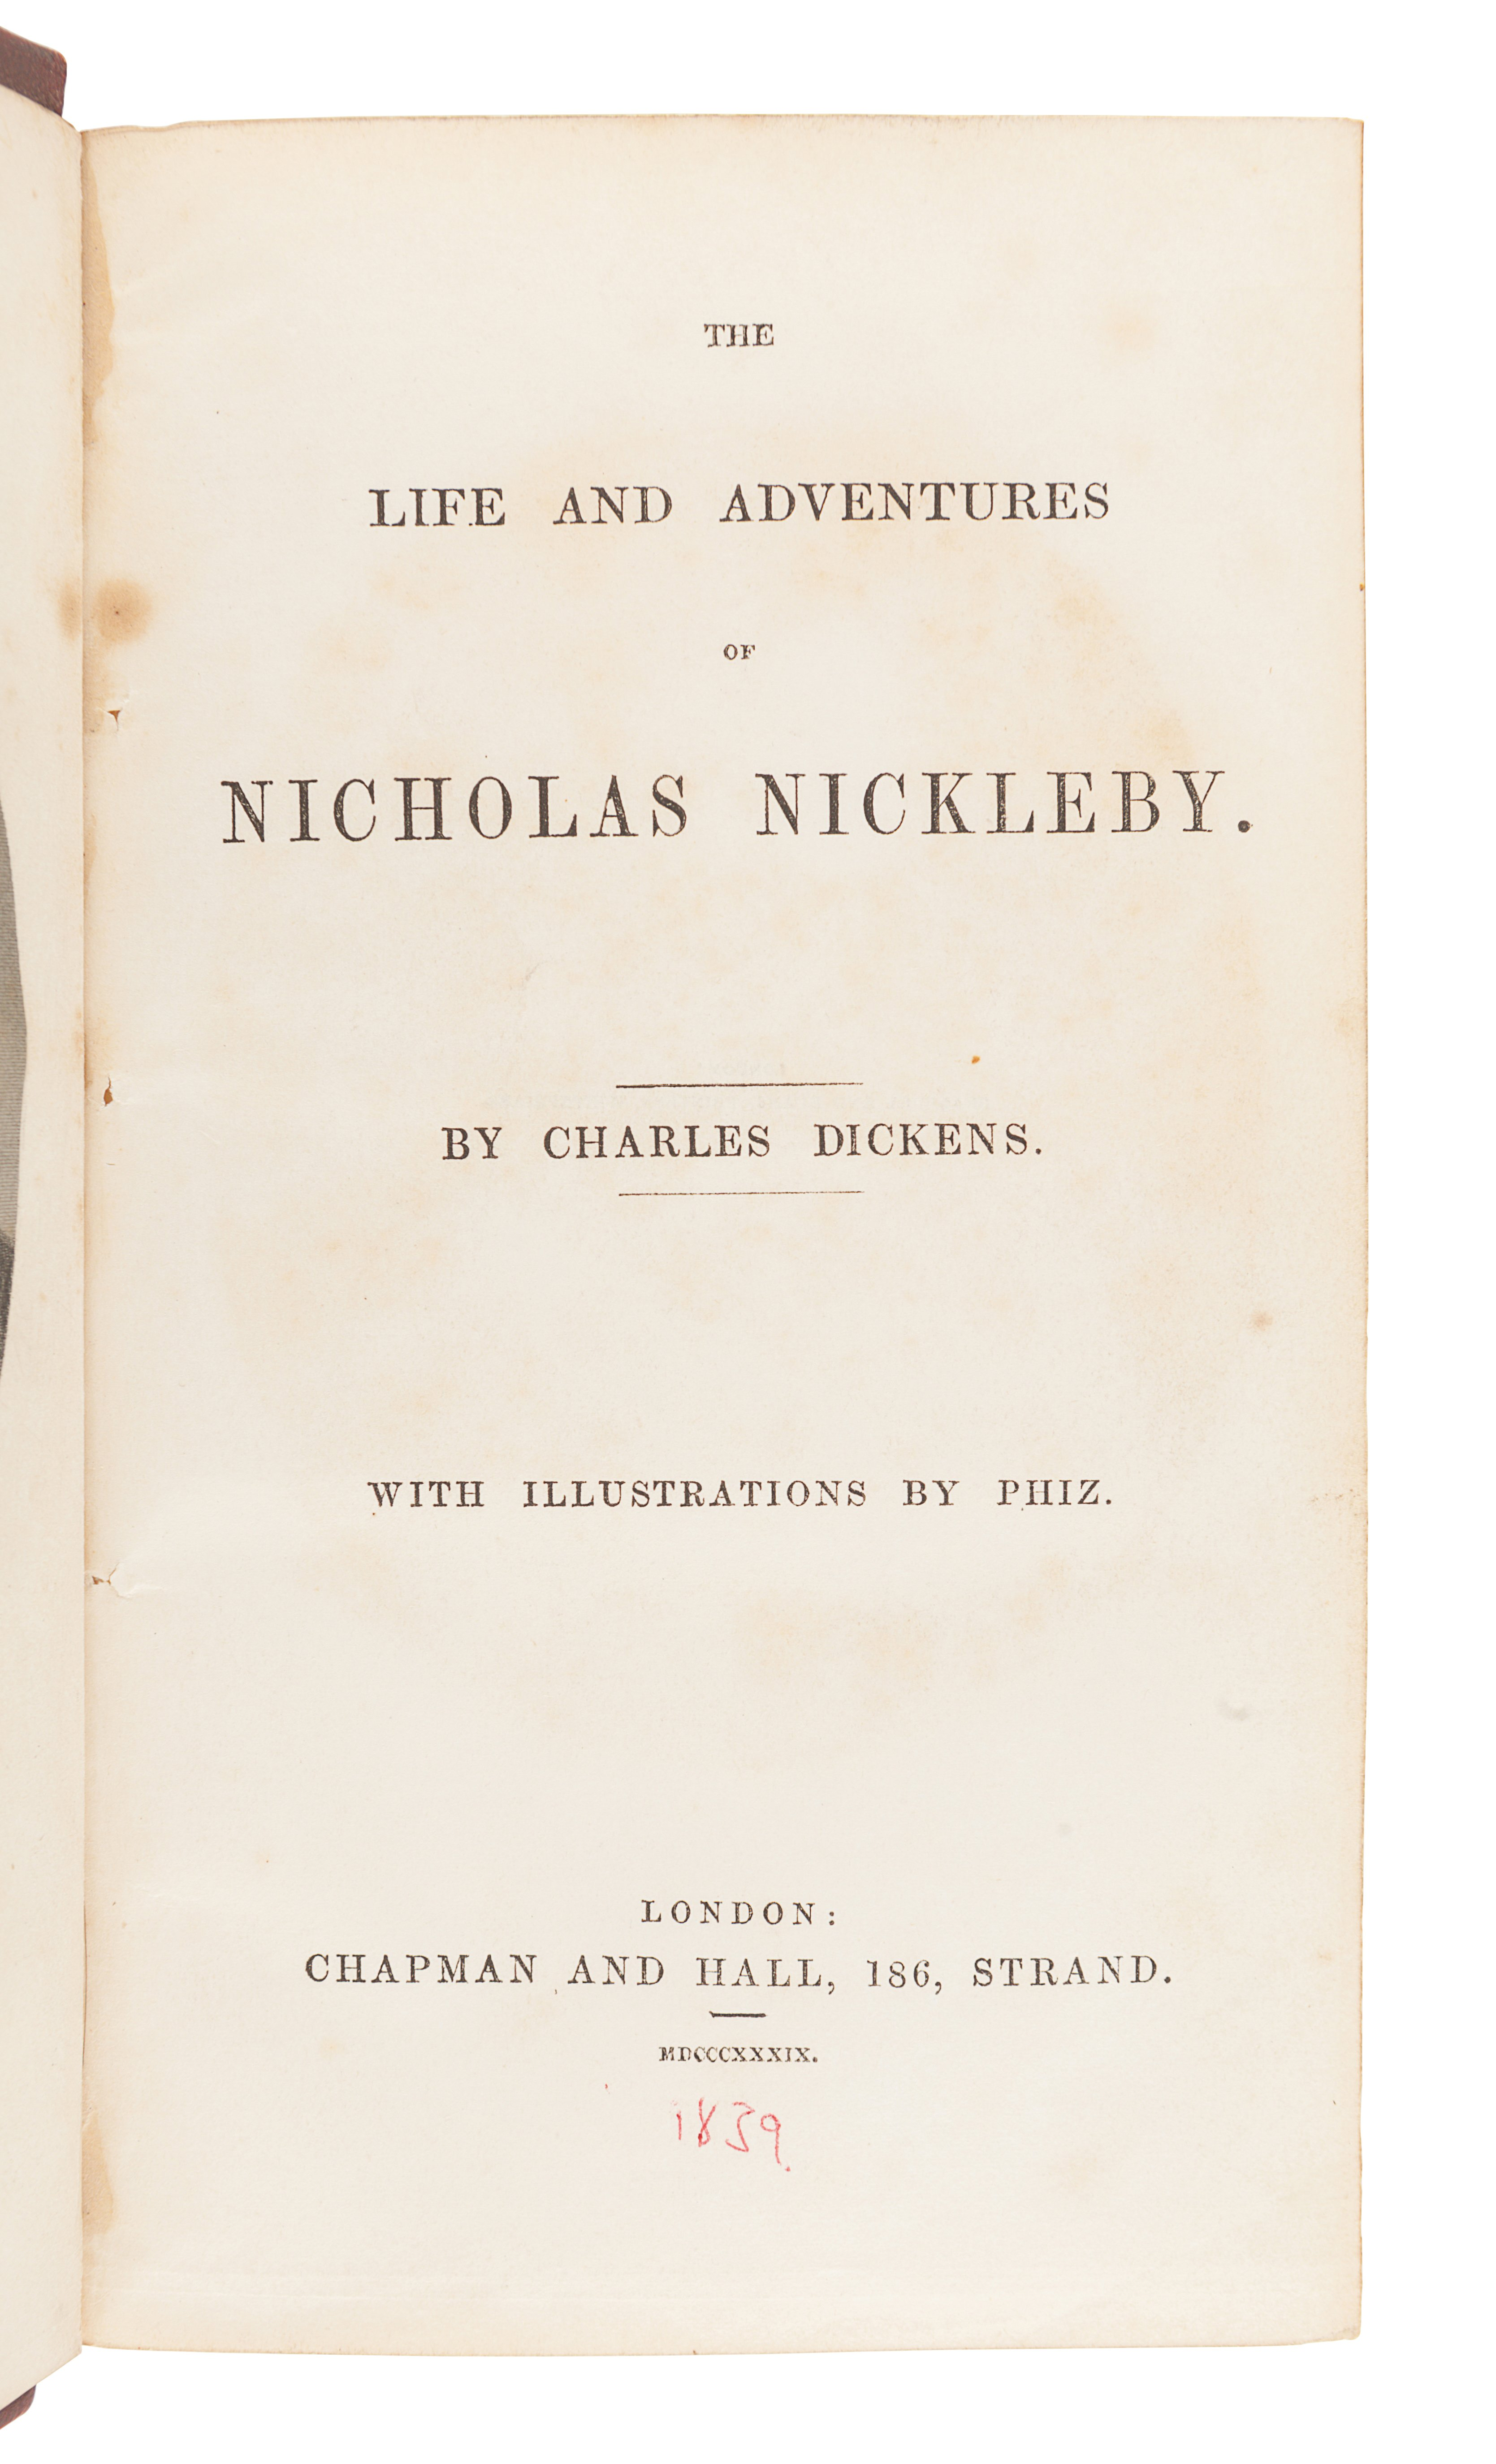 DICKENS, Charles (1812-1870). The Life and Adventures of Nicholas Nickleby. London: Chapman & Hall,